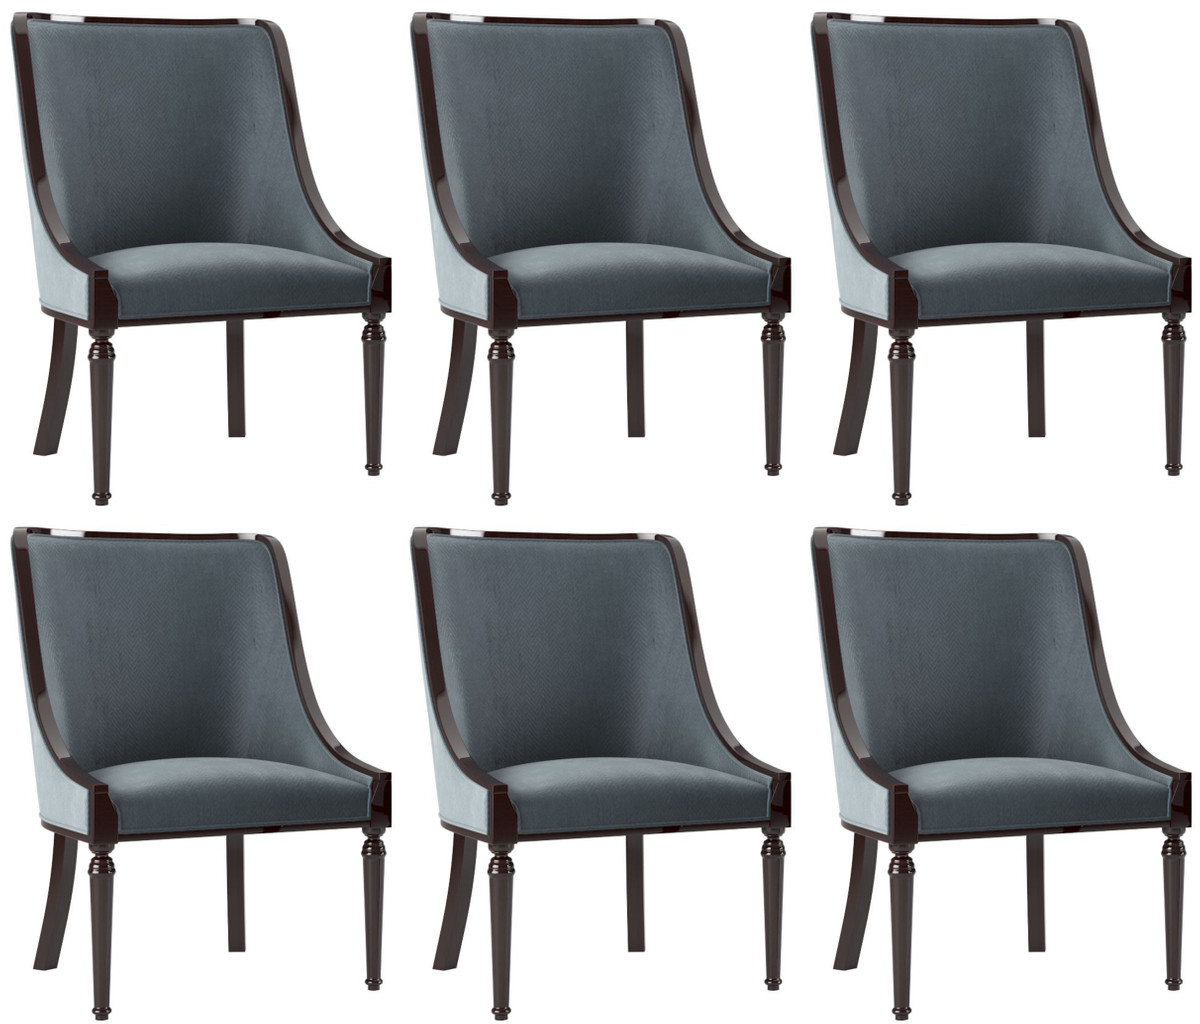 Casa Padrino Luxury Baroque Dining Chair Set Gray Dark Brown High Gloss 50 X 50 X H 92 Cm Noble Kitchen Chairs Set Of 6 Baroque Dining Room Furniture